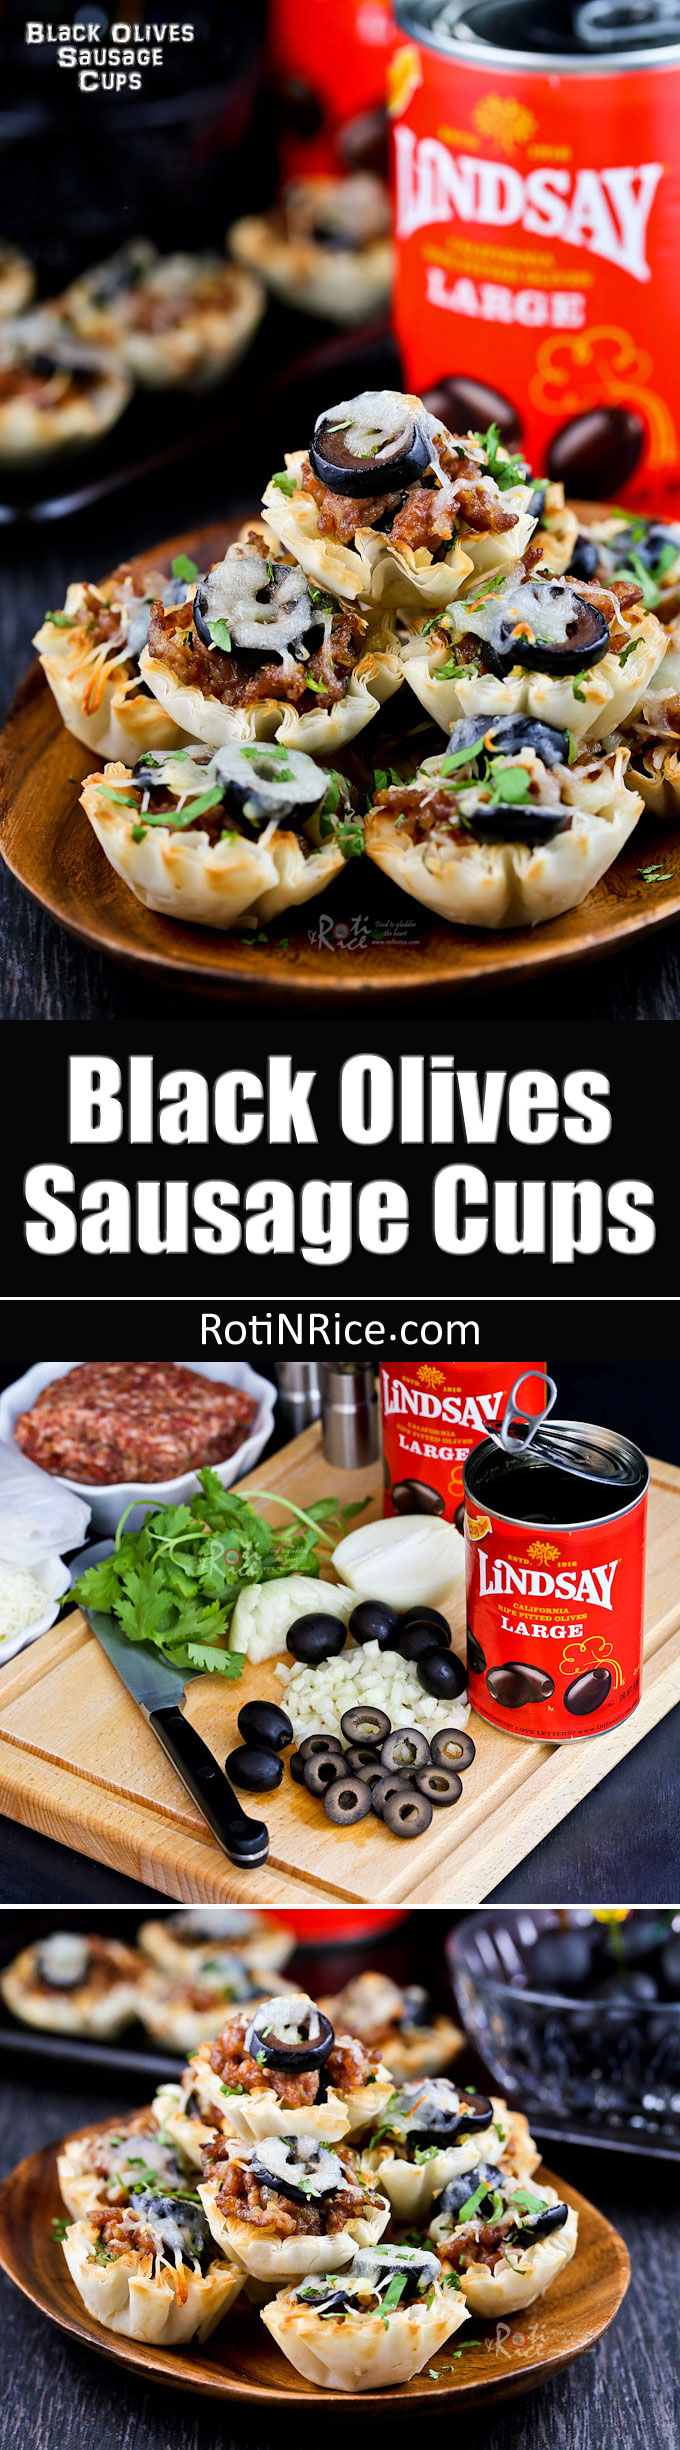 These tasty Black Olives Sausage Cups are the perfect appetizers for Game Day or any social gathering. Very quick and easy to prepare. #TeamLindsay #GameDayMoment #ad #sponsored | RotiNRice.com